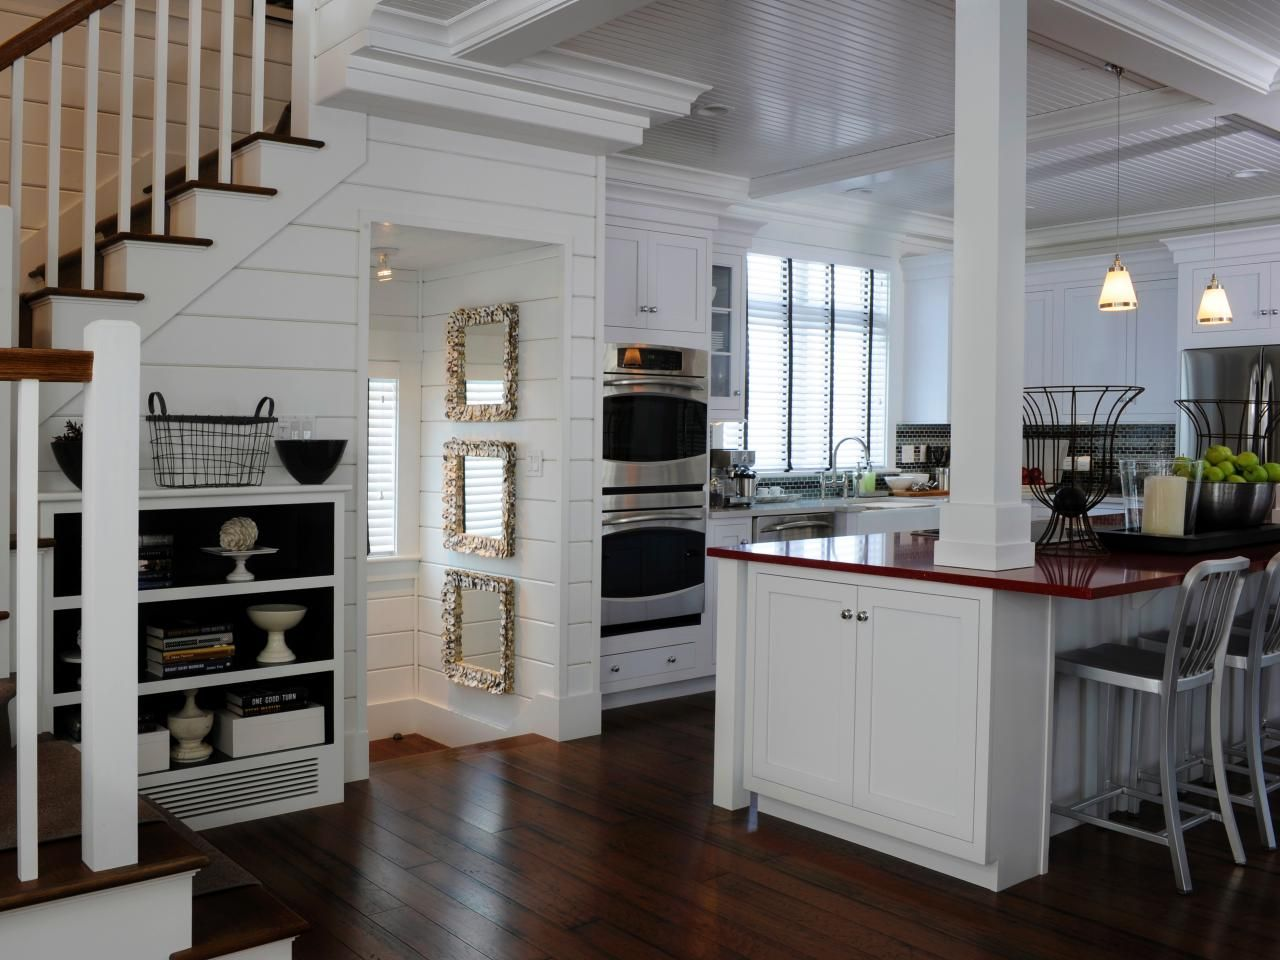 Kitchens With Columns 12 cozy cottage kitchens | hgtv, kitchens and countertop